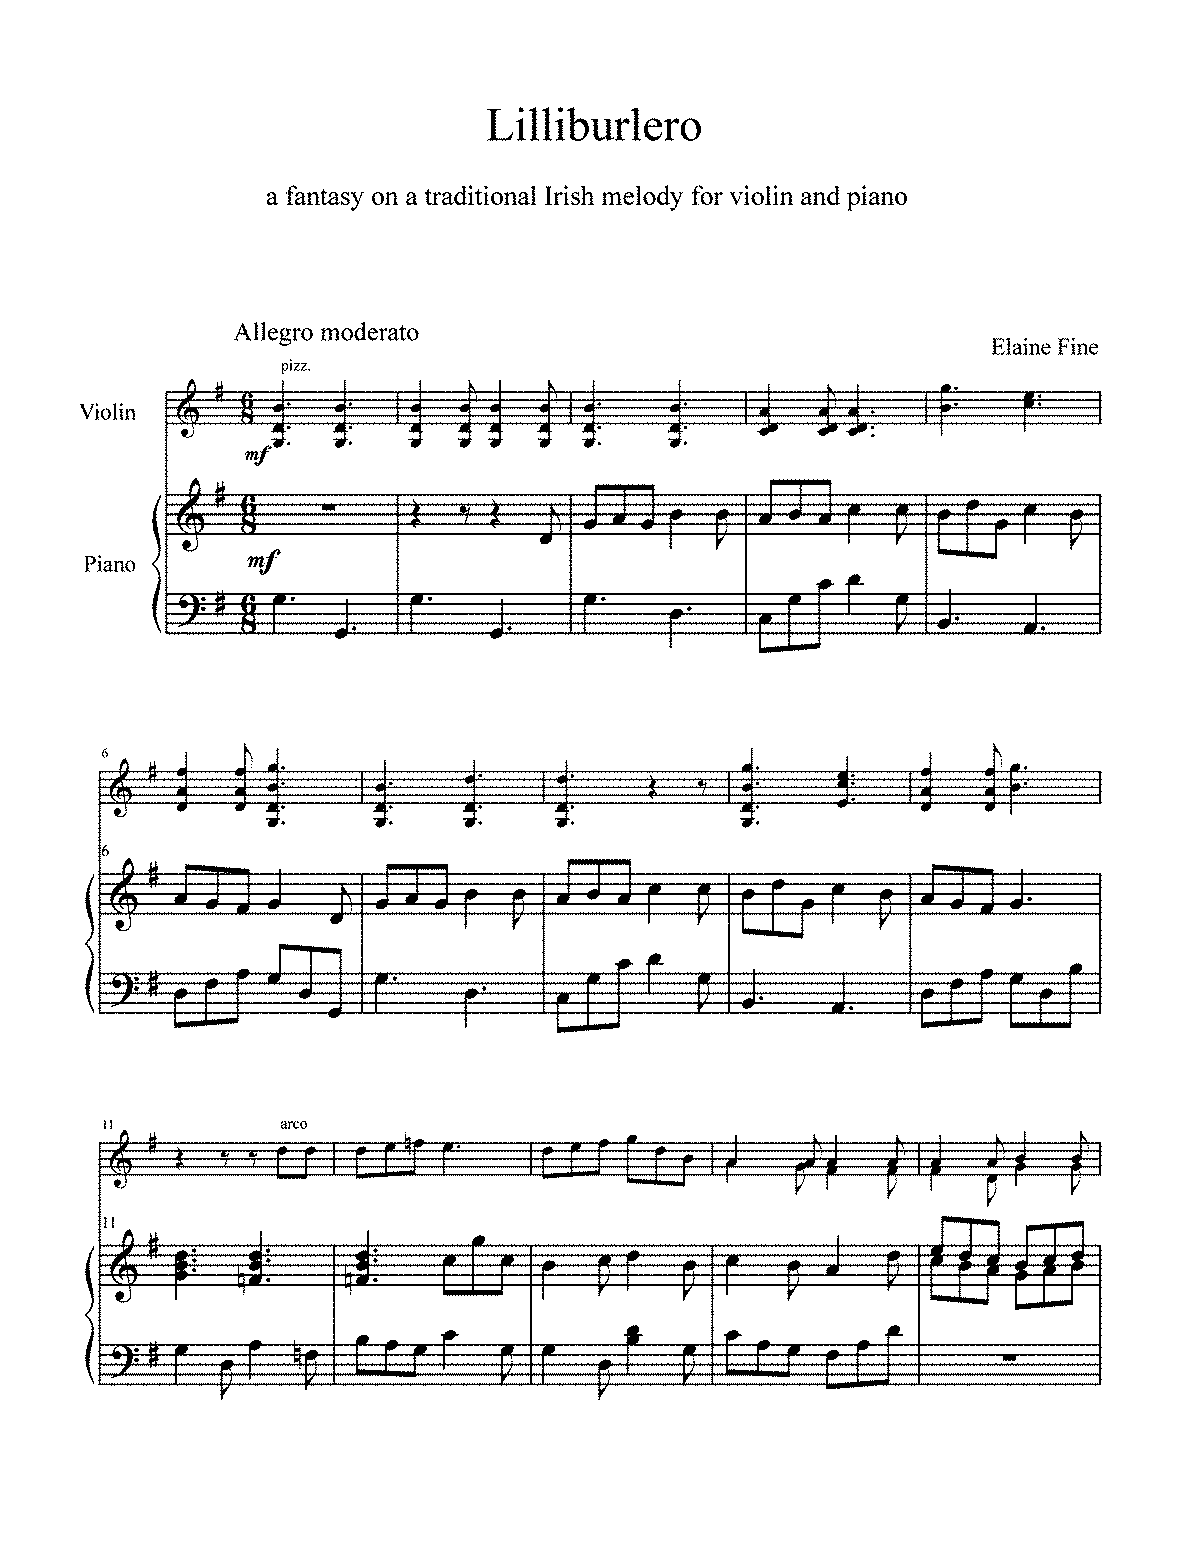 WIMA.3e07-Lilliburlero for Violin and Piano.pdf